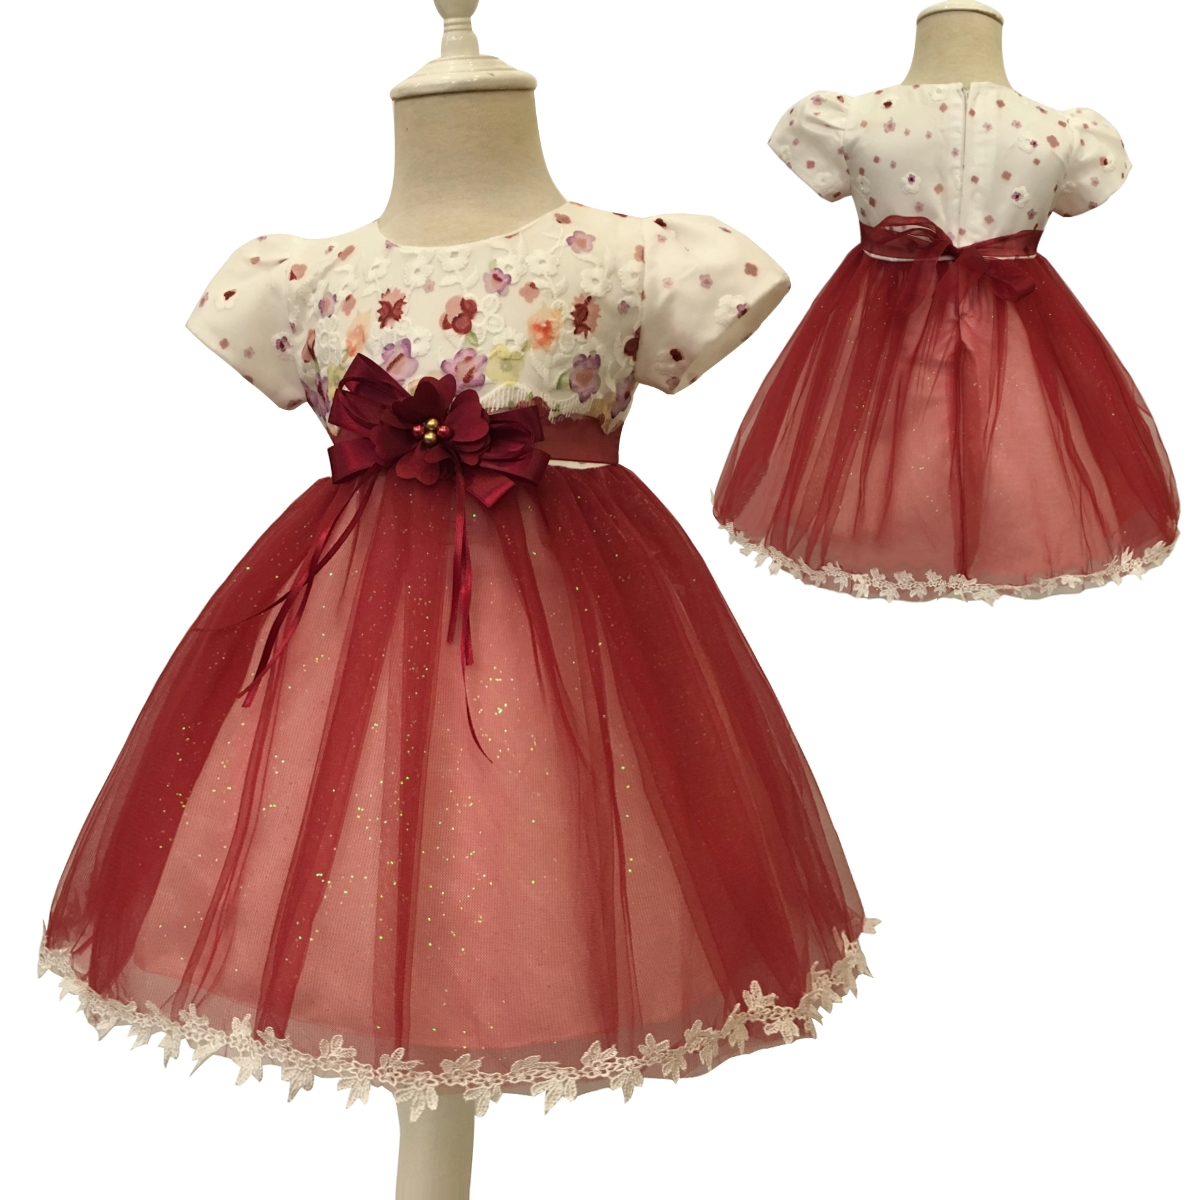 Free Shipping Patchwork 70-130 Infant Dresses 2018 Last Arrival Short Sleeves Baby Dress For 1 Year Girl Toddler Princess Gowns